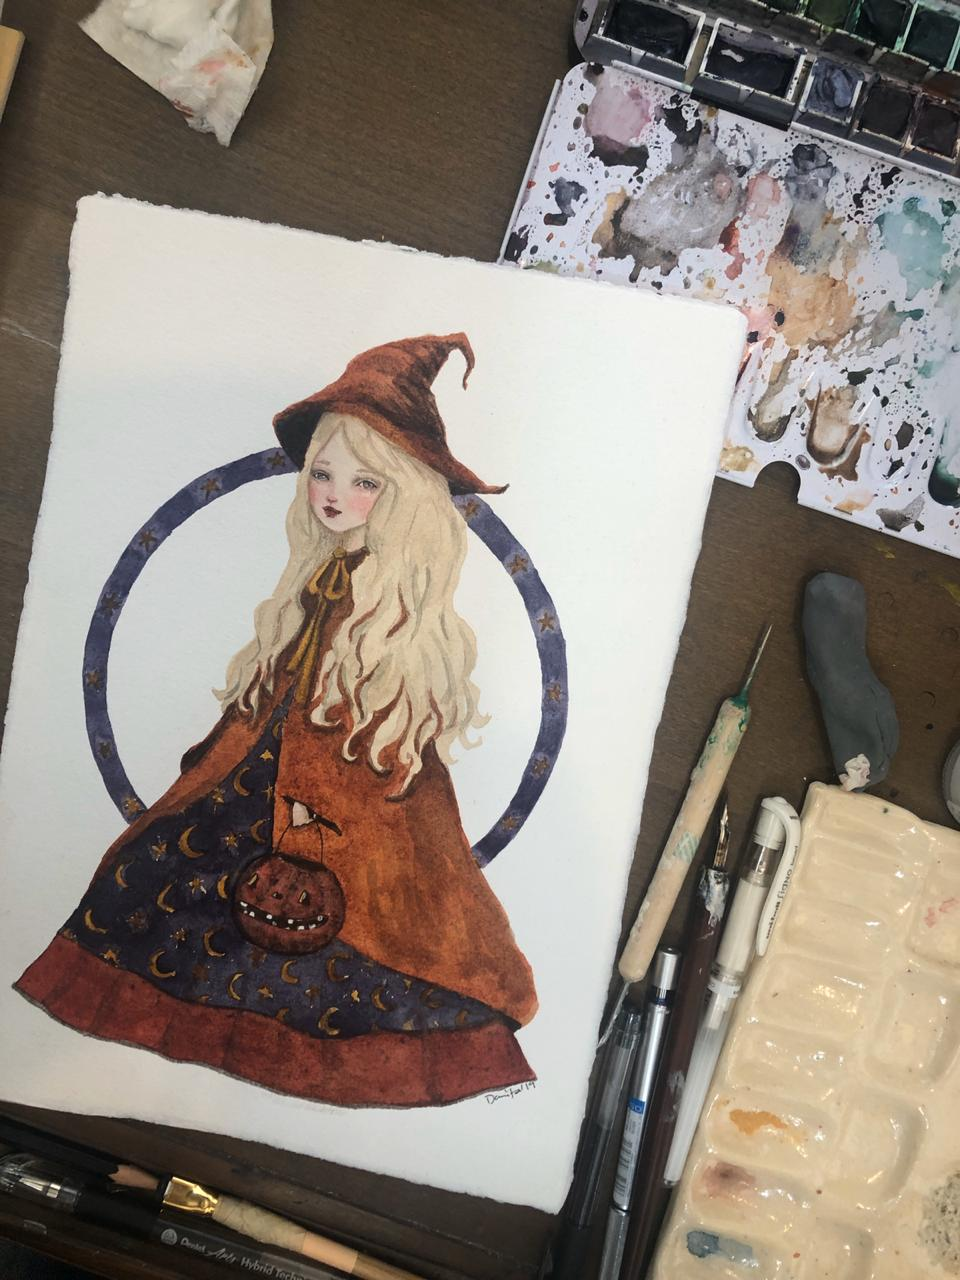 Beautiful original watercolor Halloween art by Danita. Inspired by vintage halloween postcards and photographs, this whimsical folk art inspired watercolor painting will be an amazing home decor accent.